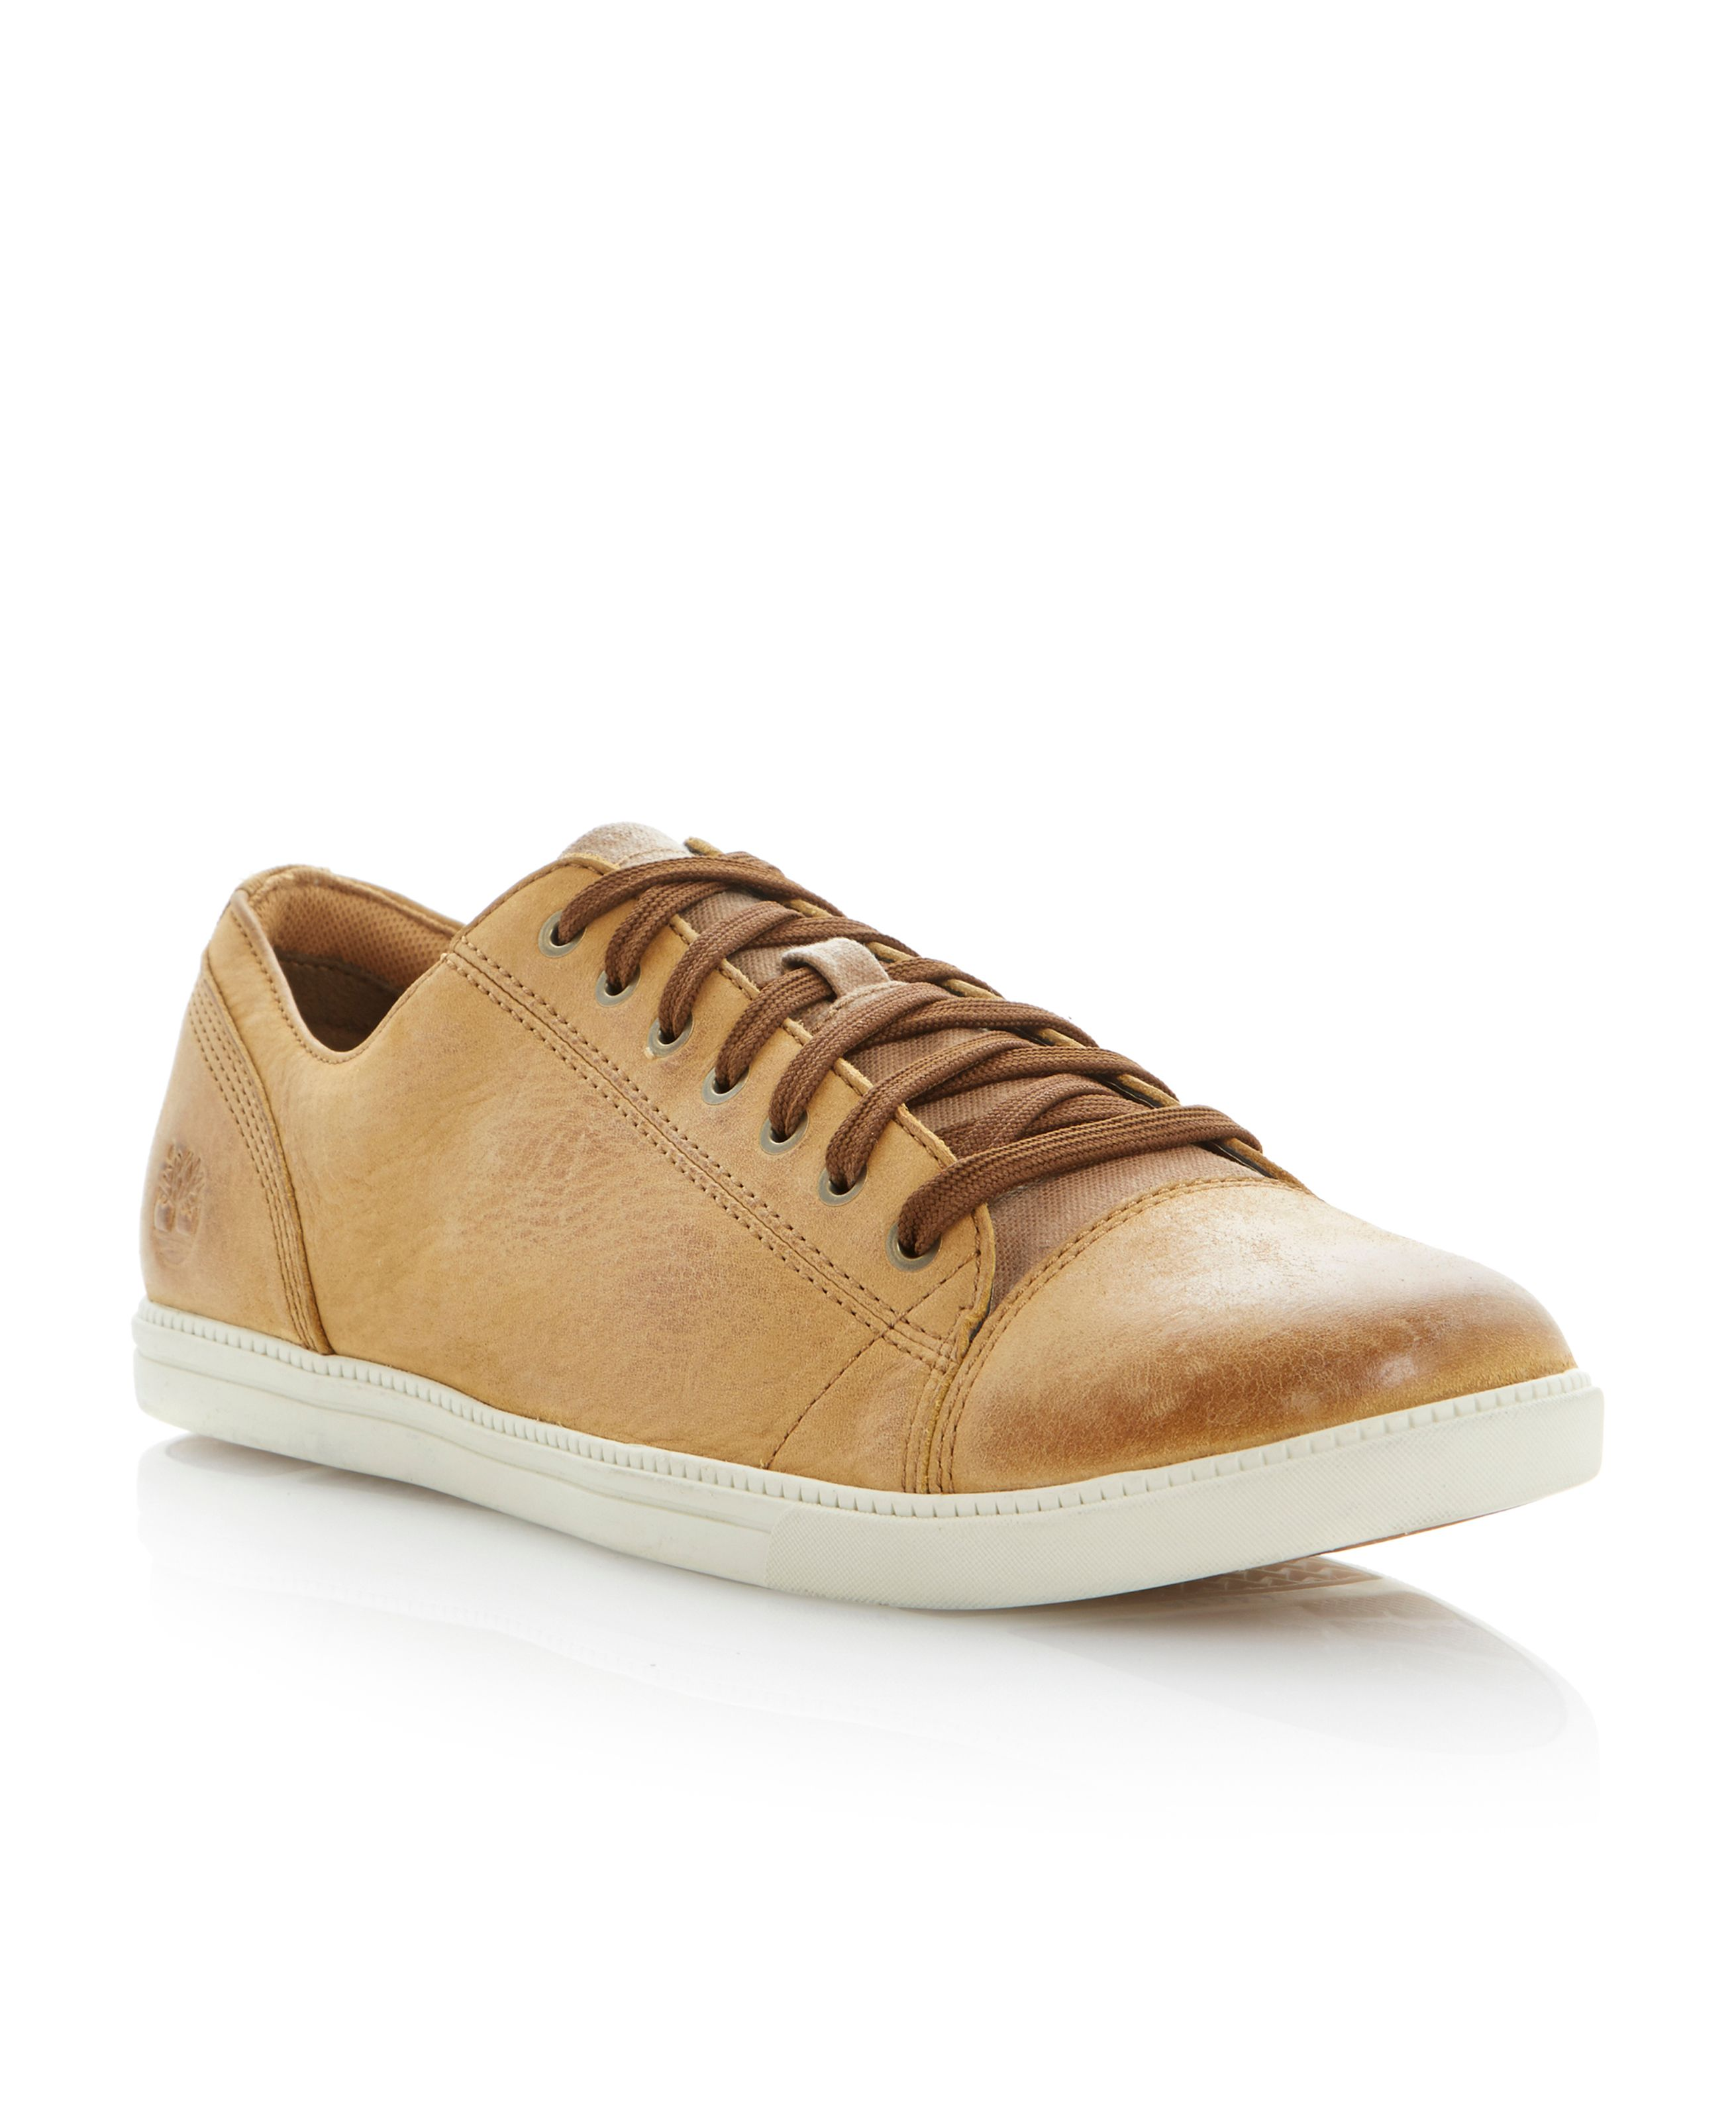 lace up toecap leather sneakers